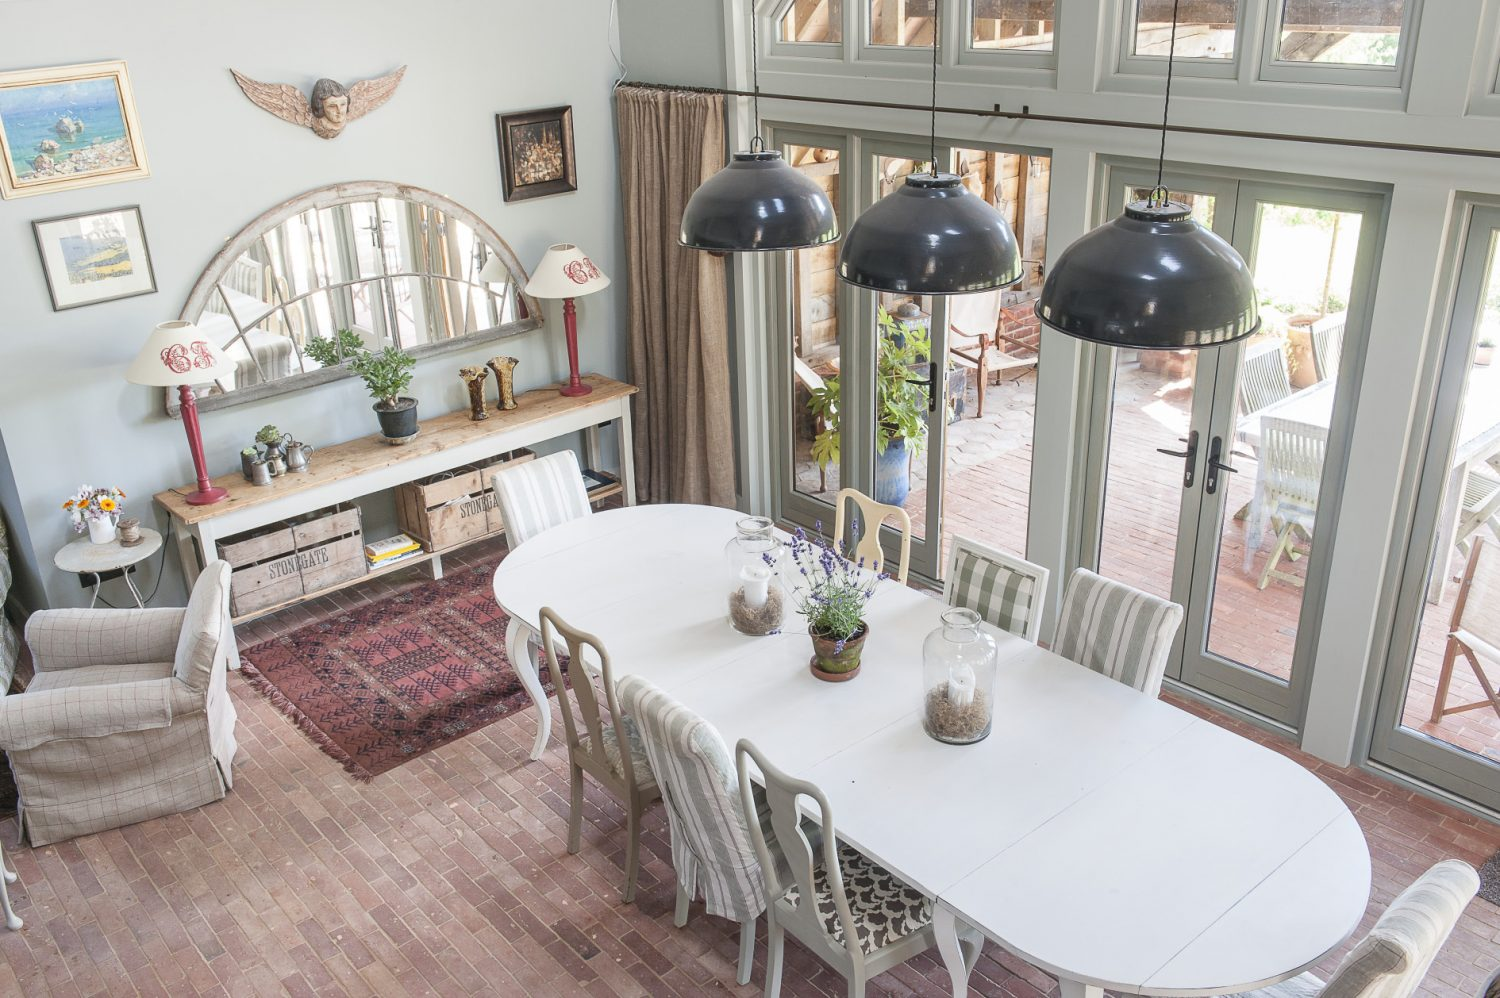 In the dining room, eight doors open outward onto a wonderful rustic covered terrace